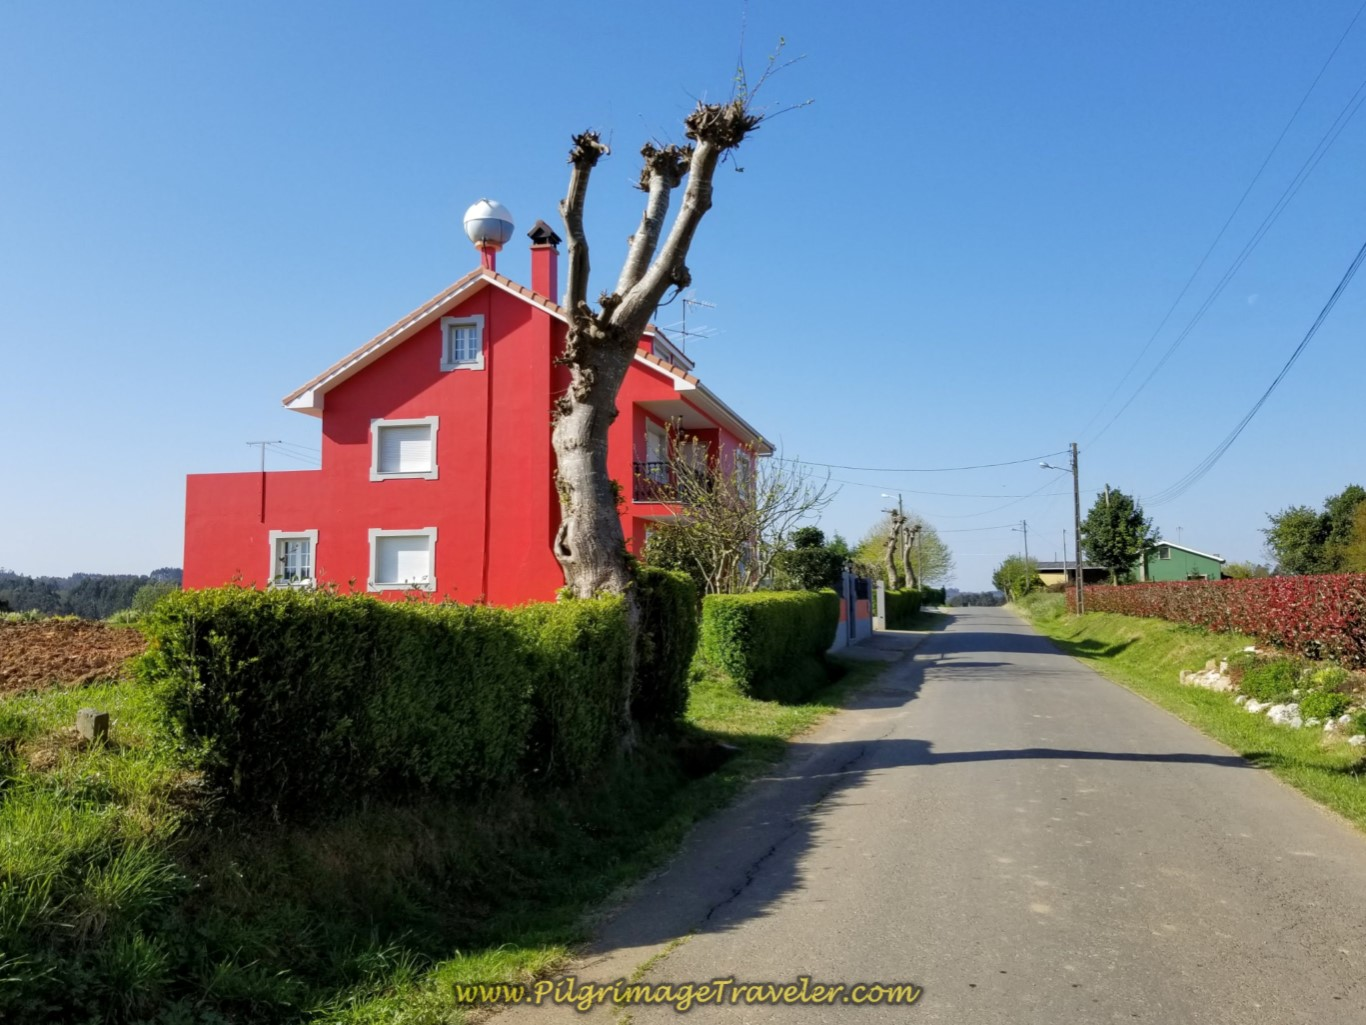 Distinctive Red House, Leaving A Calle on day seven of the English Way